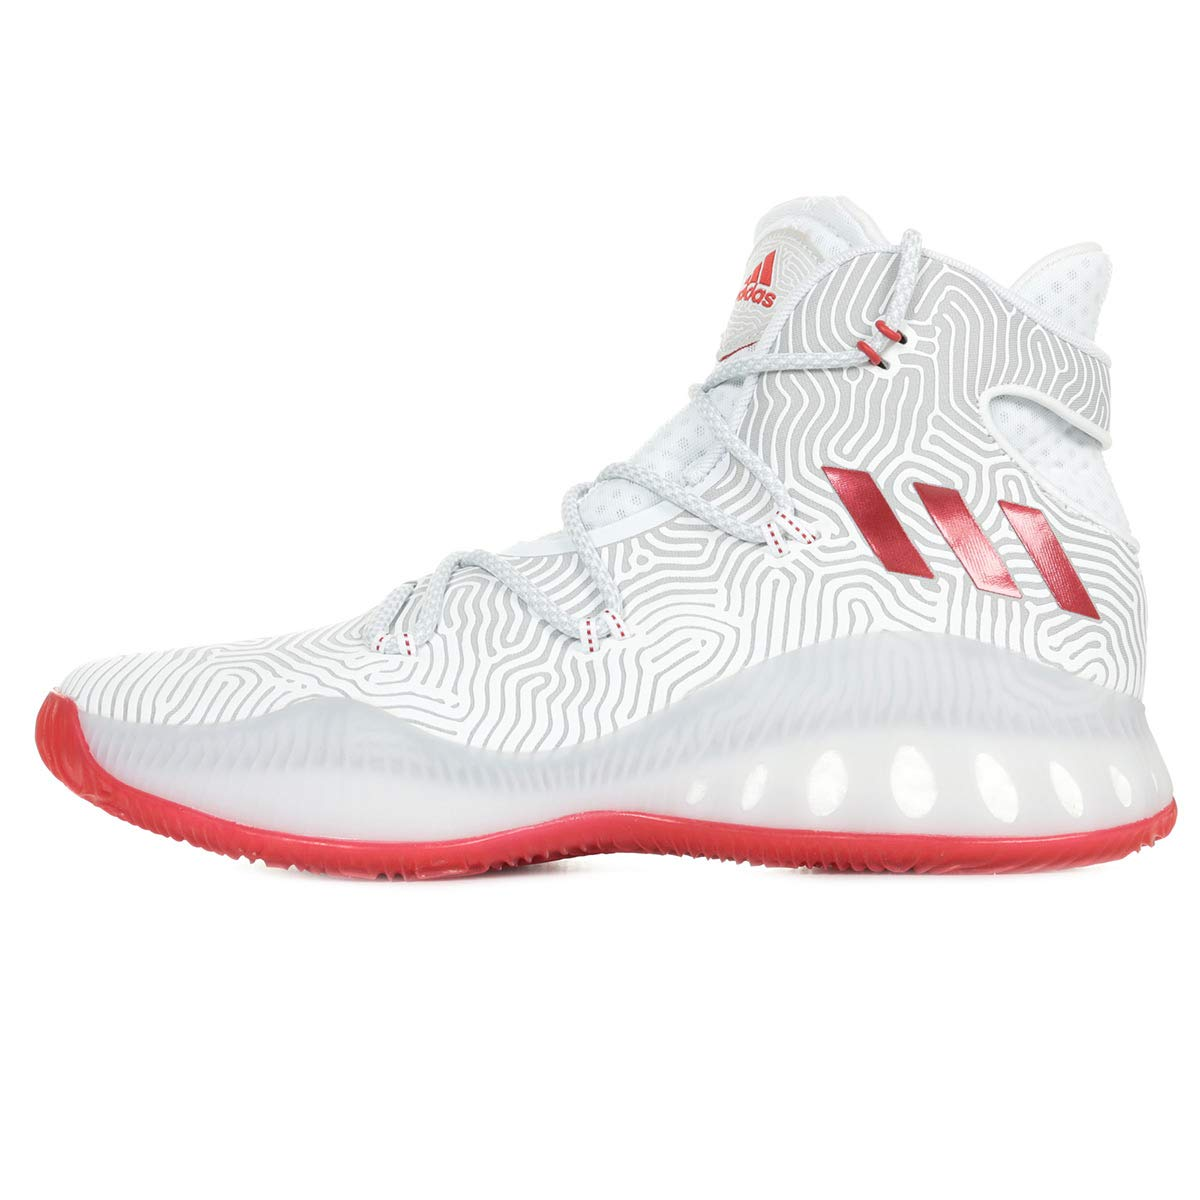 new arrival 5fa1a 16104 adidas Performance Crazy Explosive BB8342, Trainers White Amazon.co.uk  Shoes  Bags